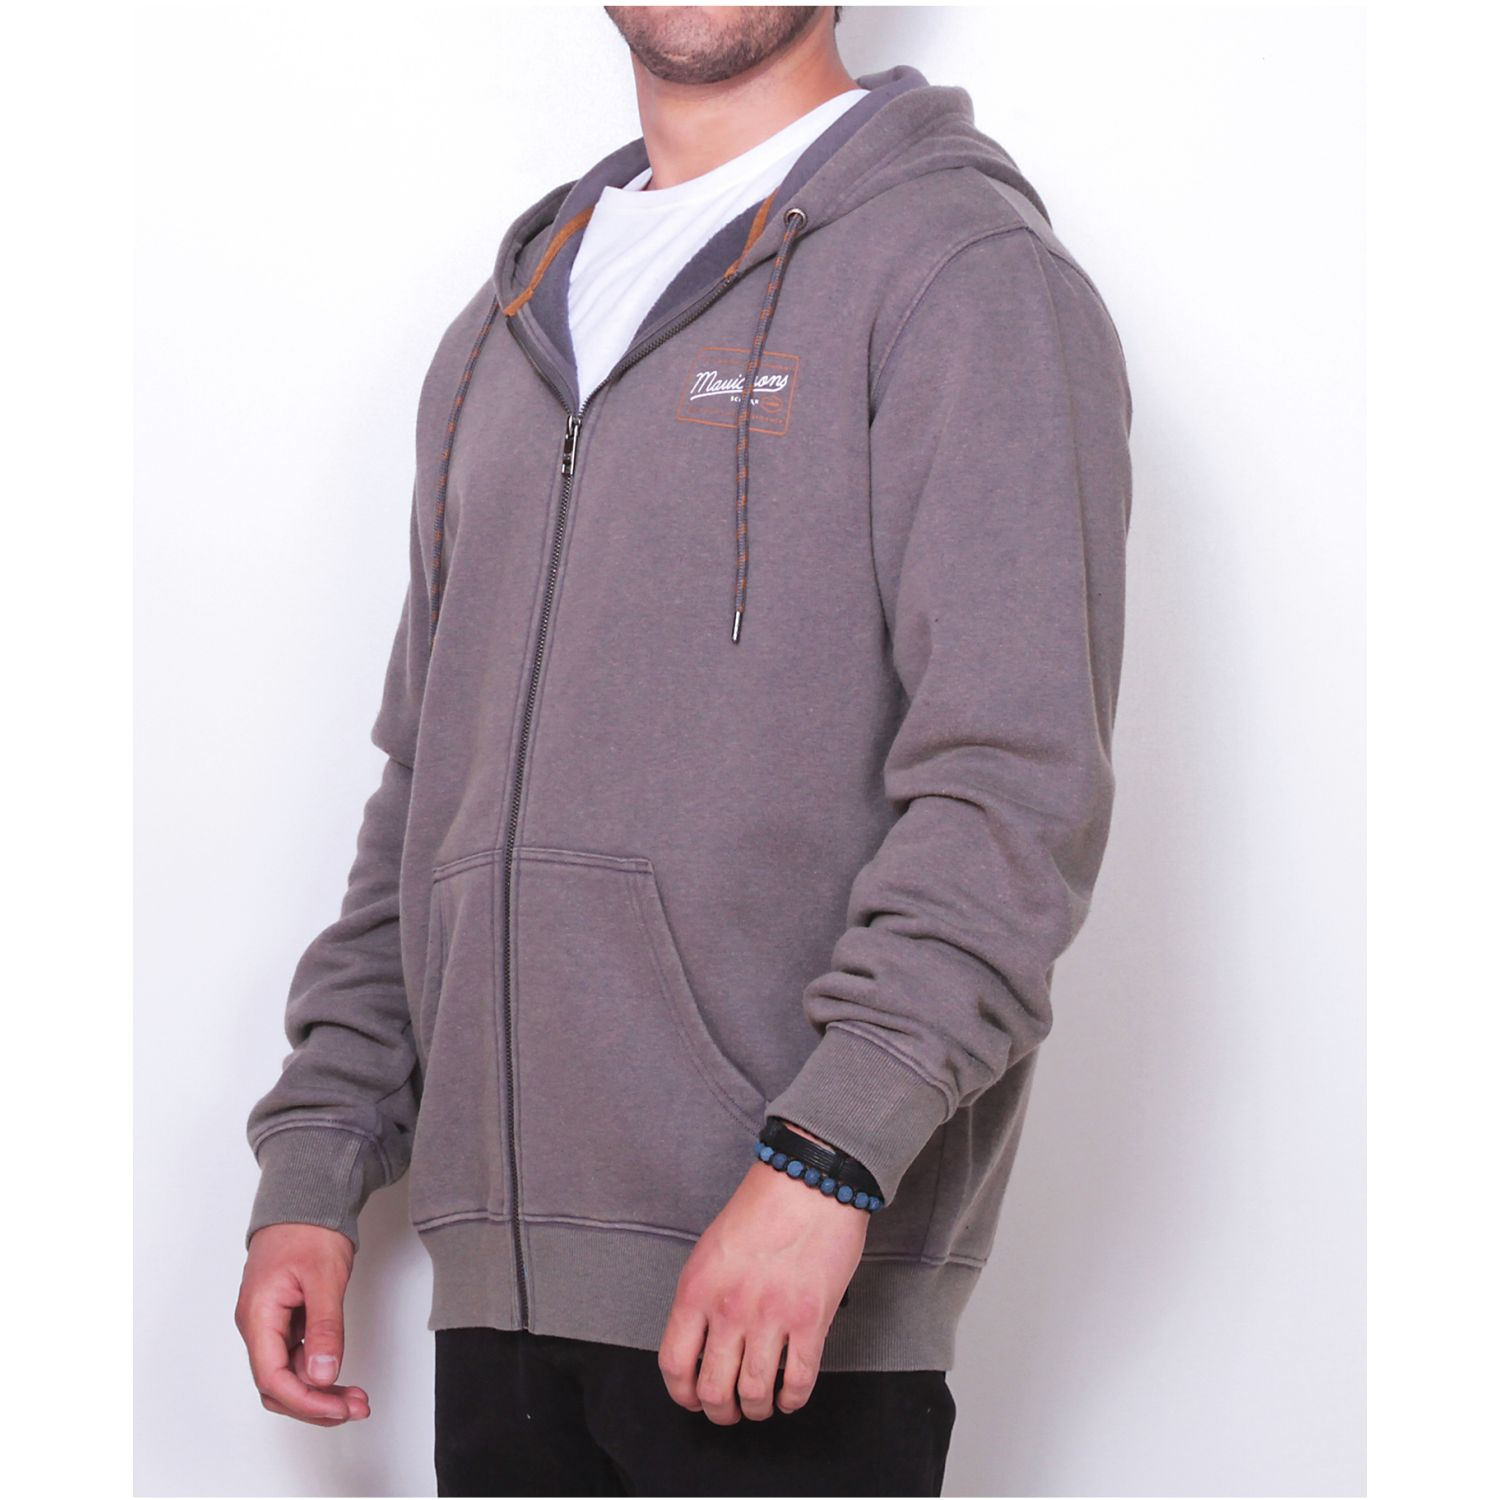 MAUI AND SONS POLERON 5O208-MI19 FZIP LISO Plomo Hoodies y Sweaters Fashion